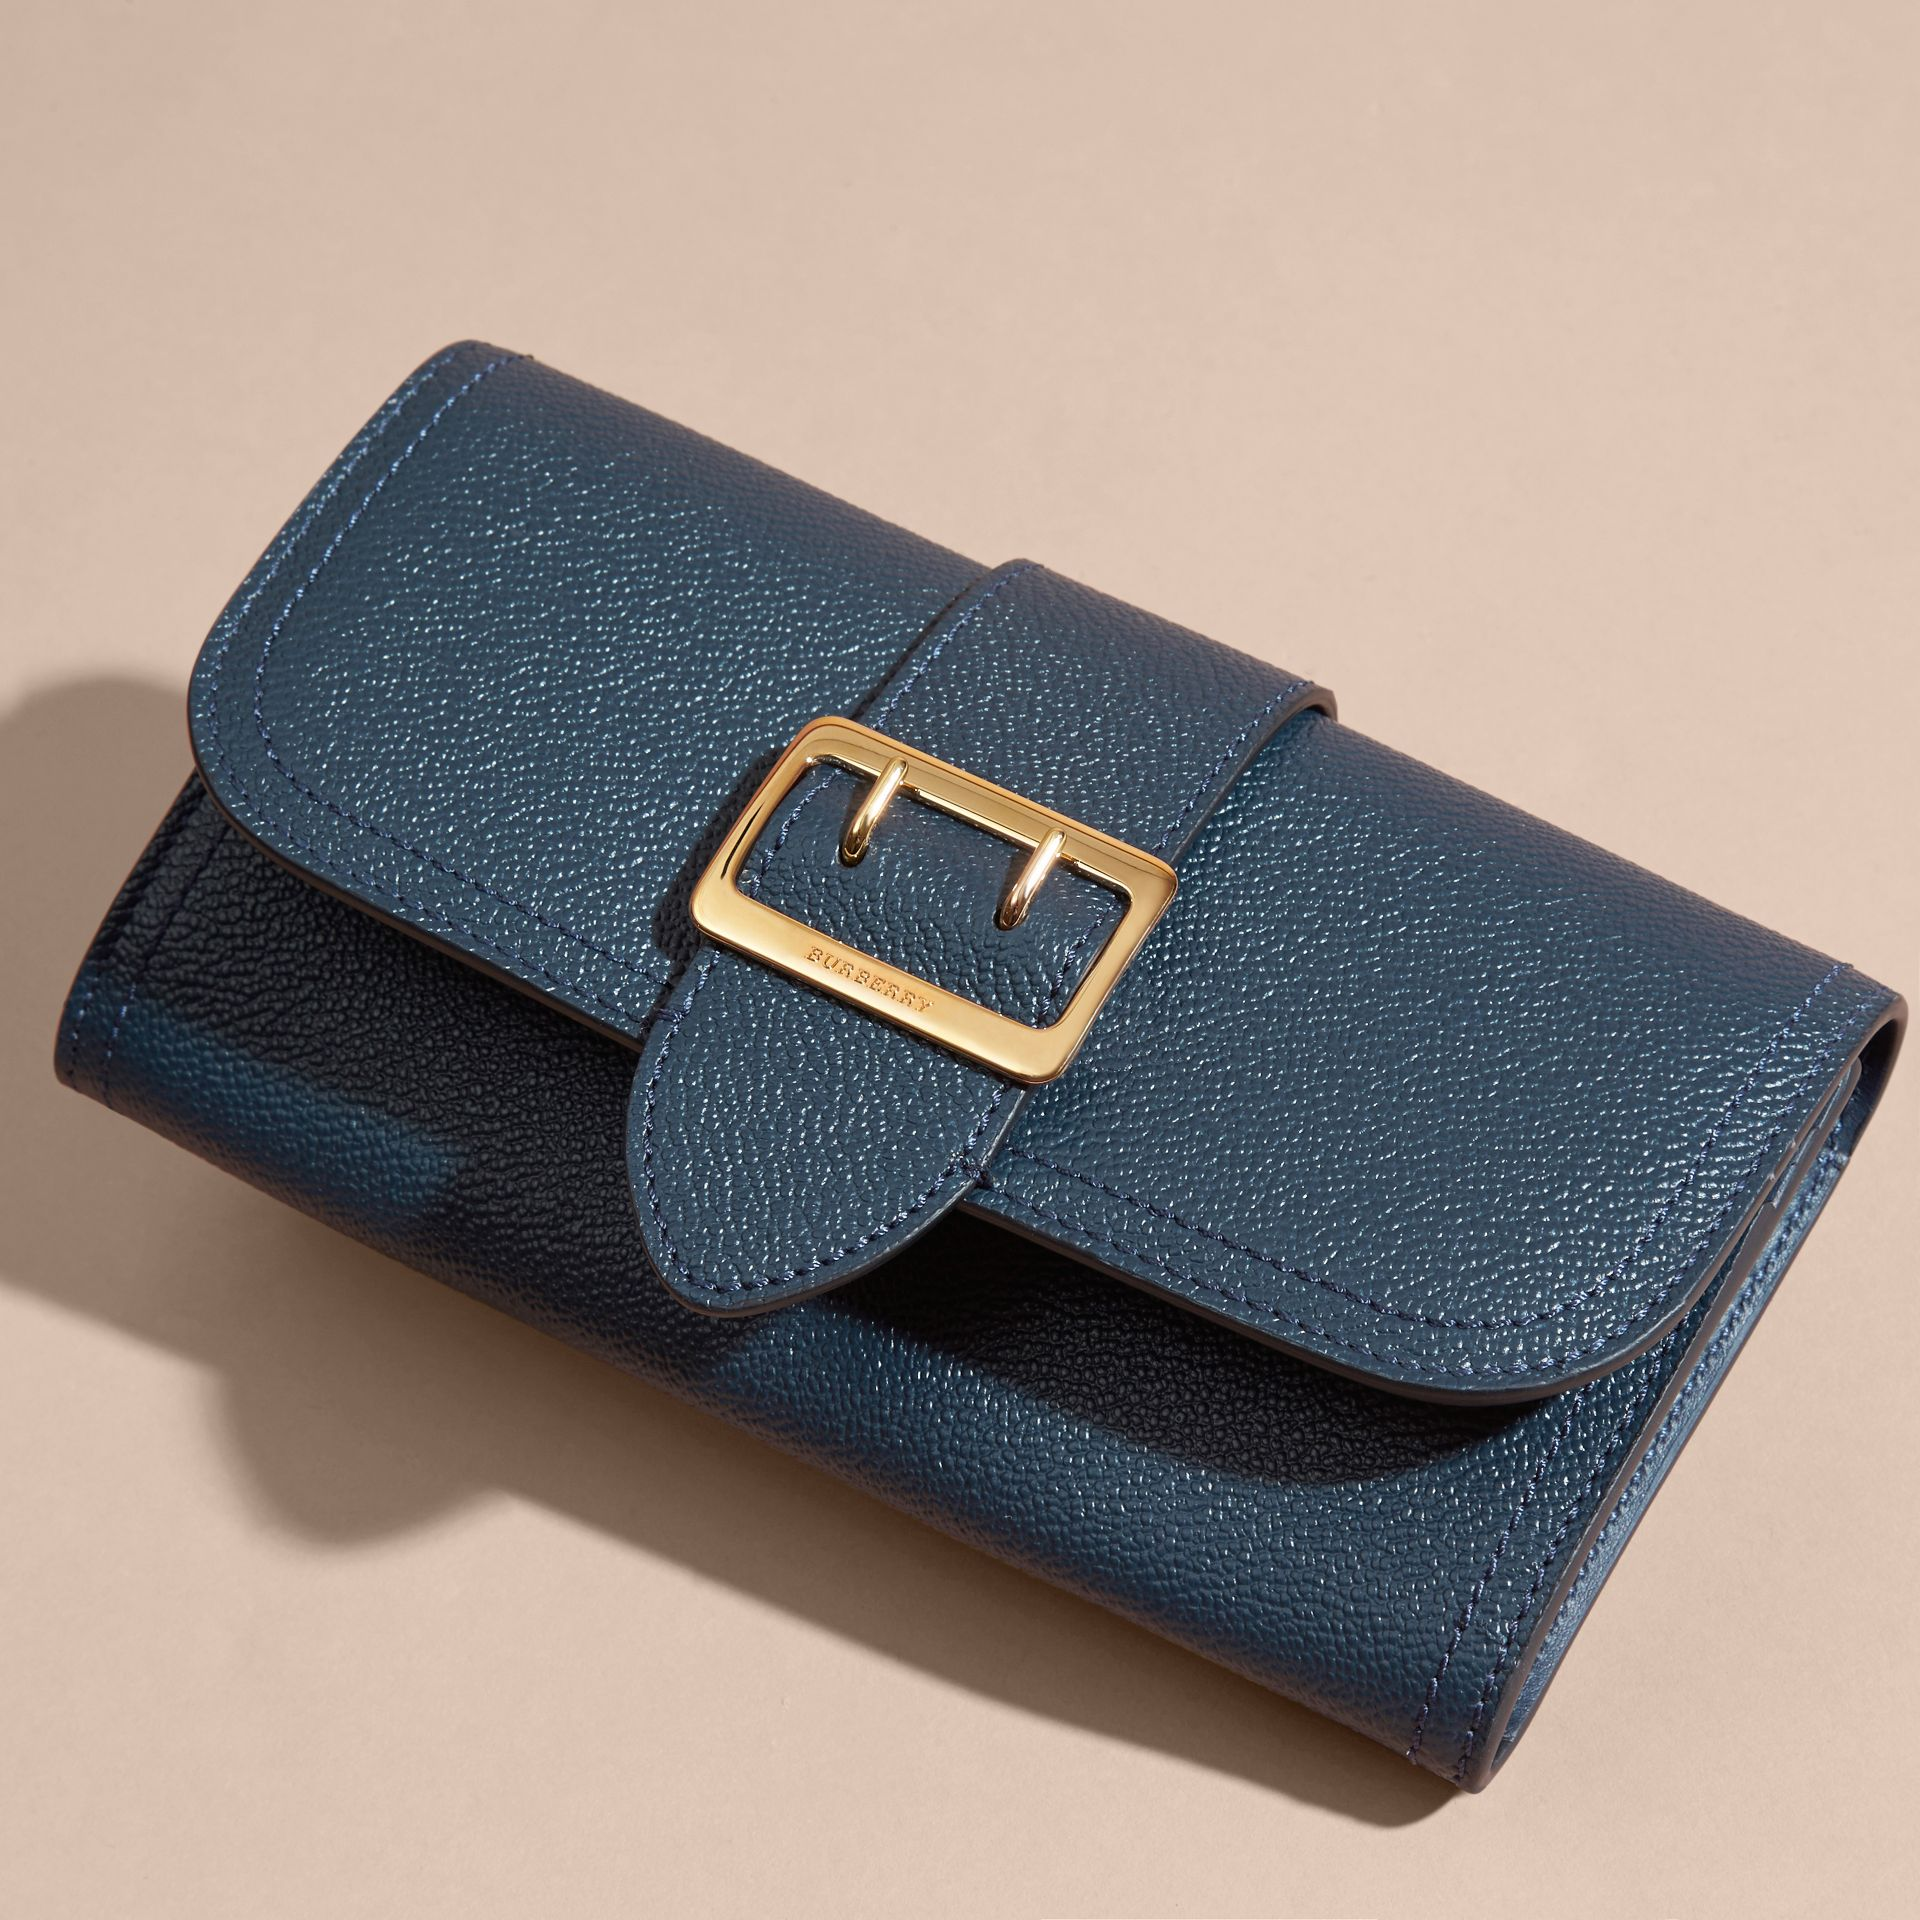 Textured Leather Continental Wallet in Blue Carbon - Women | Burberry Hong Kong - gallery image 6